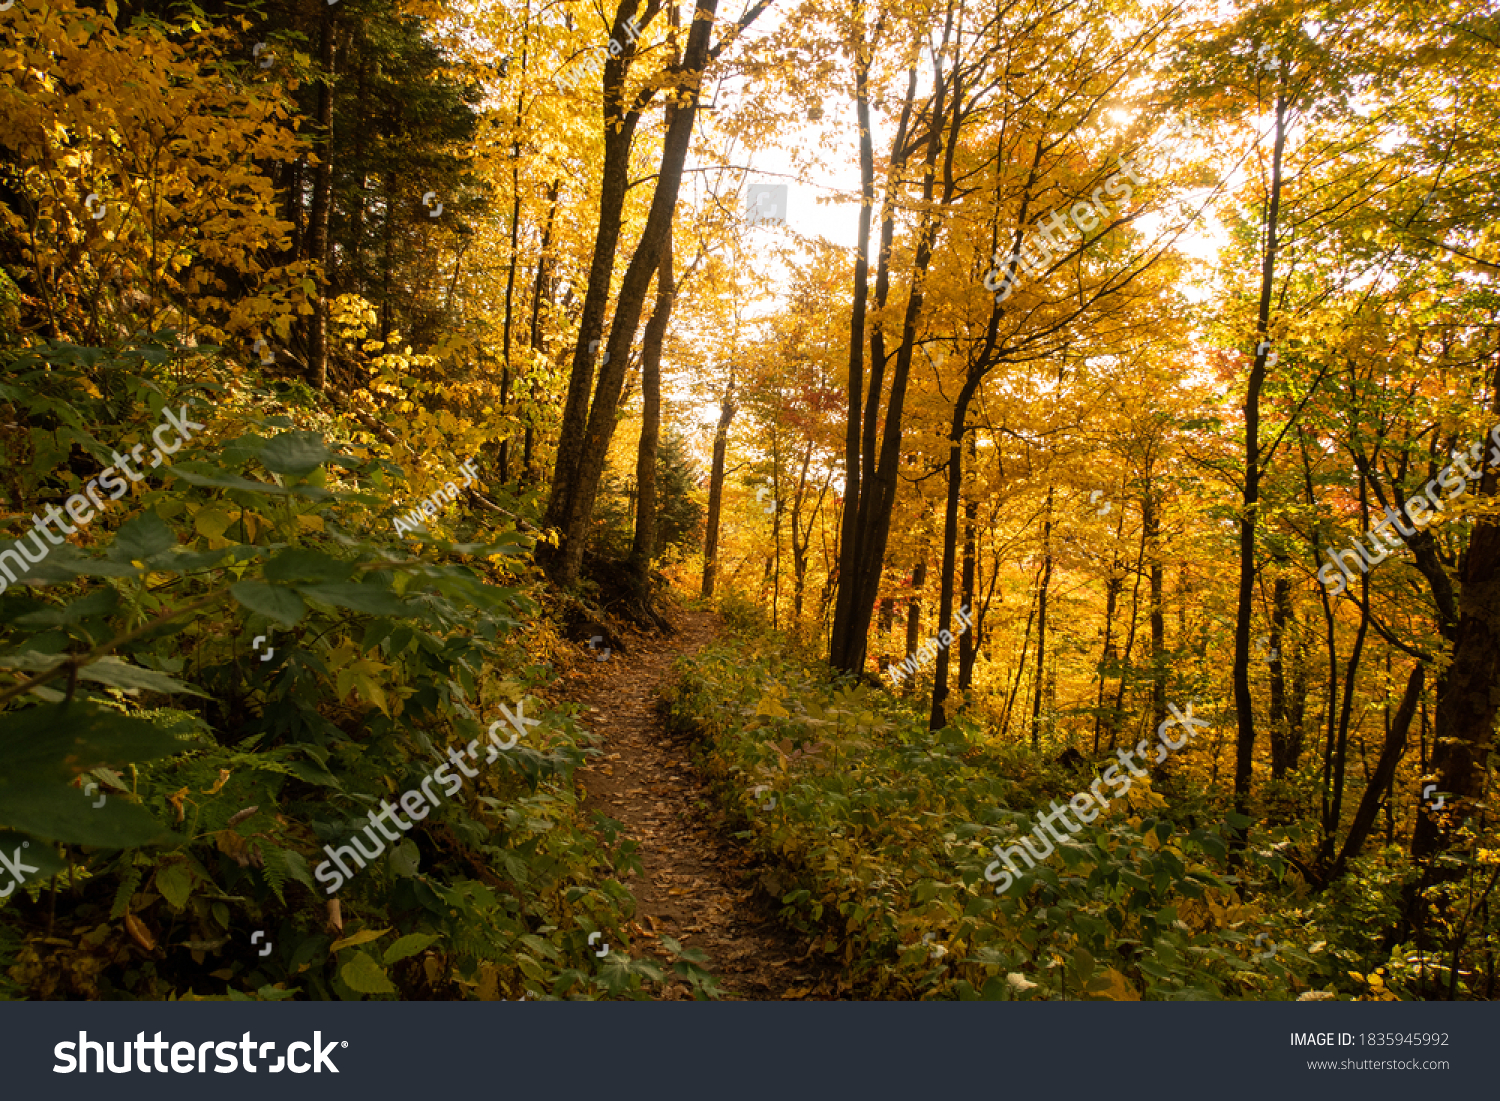 stock-photo-autumnal-view-of-a-forest-tr